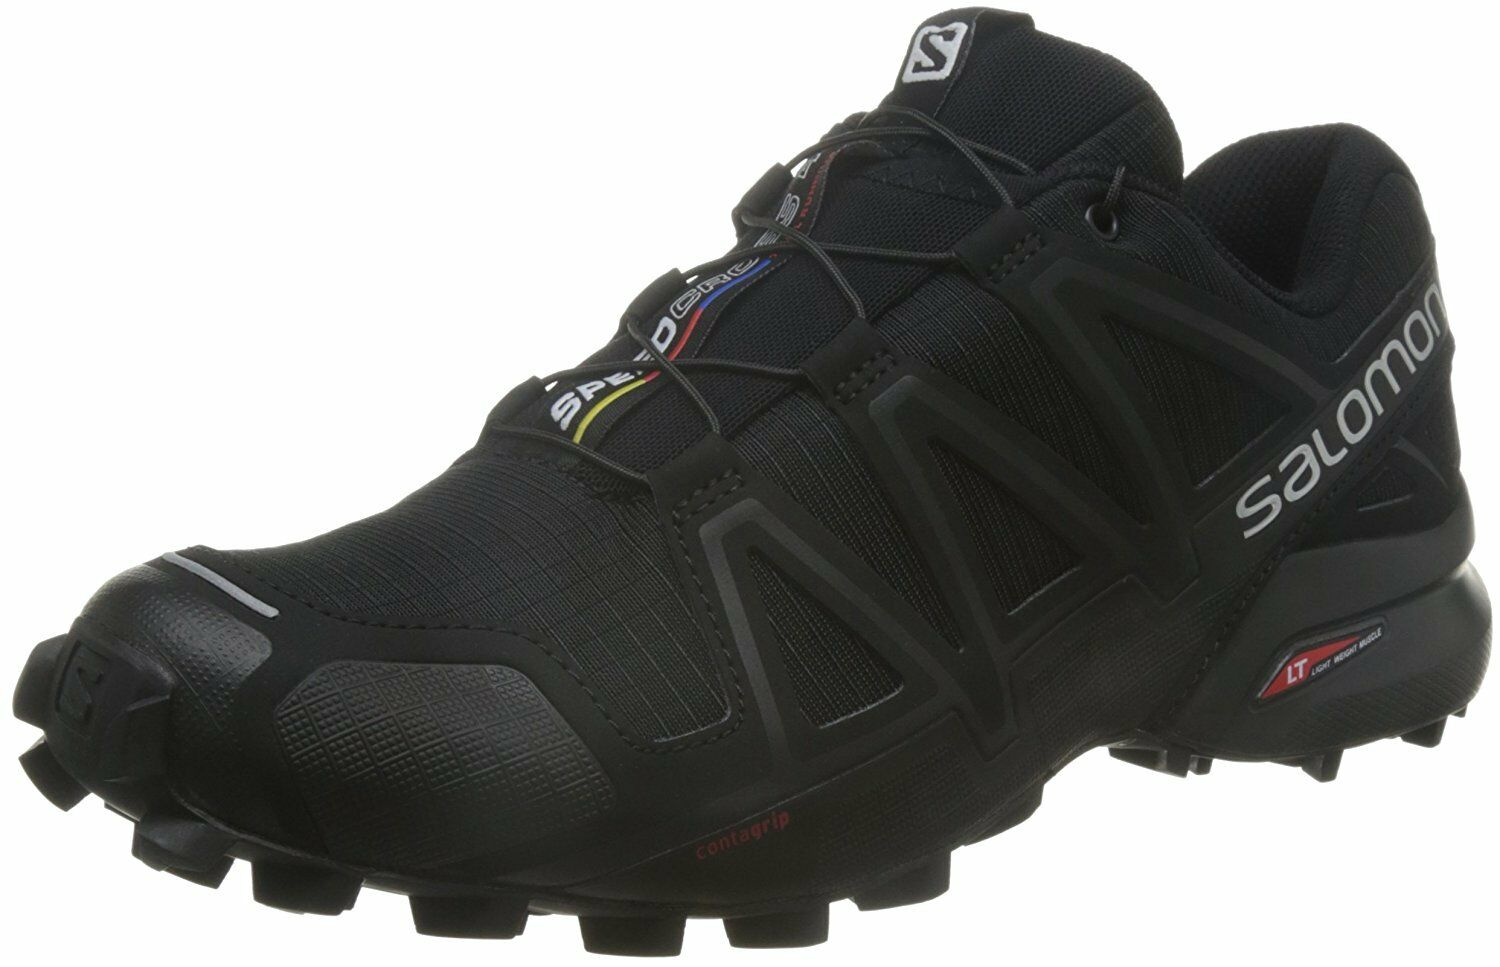 Salomon Mens SPEEDCROSS 4 Athletic schuhe, schwarz A1U8, 12 M US